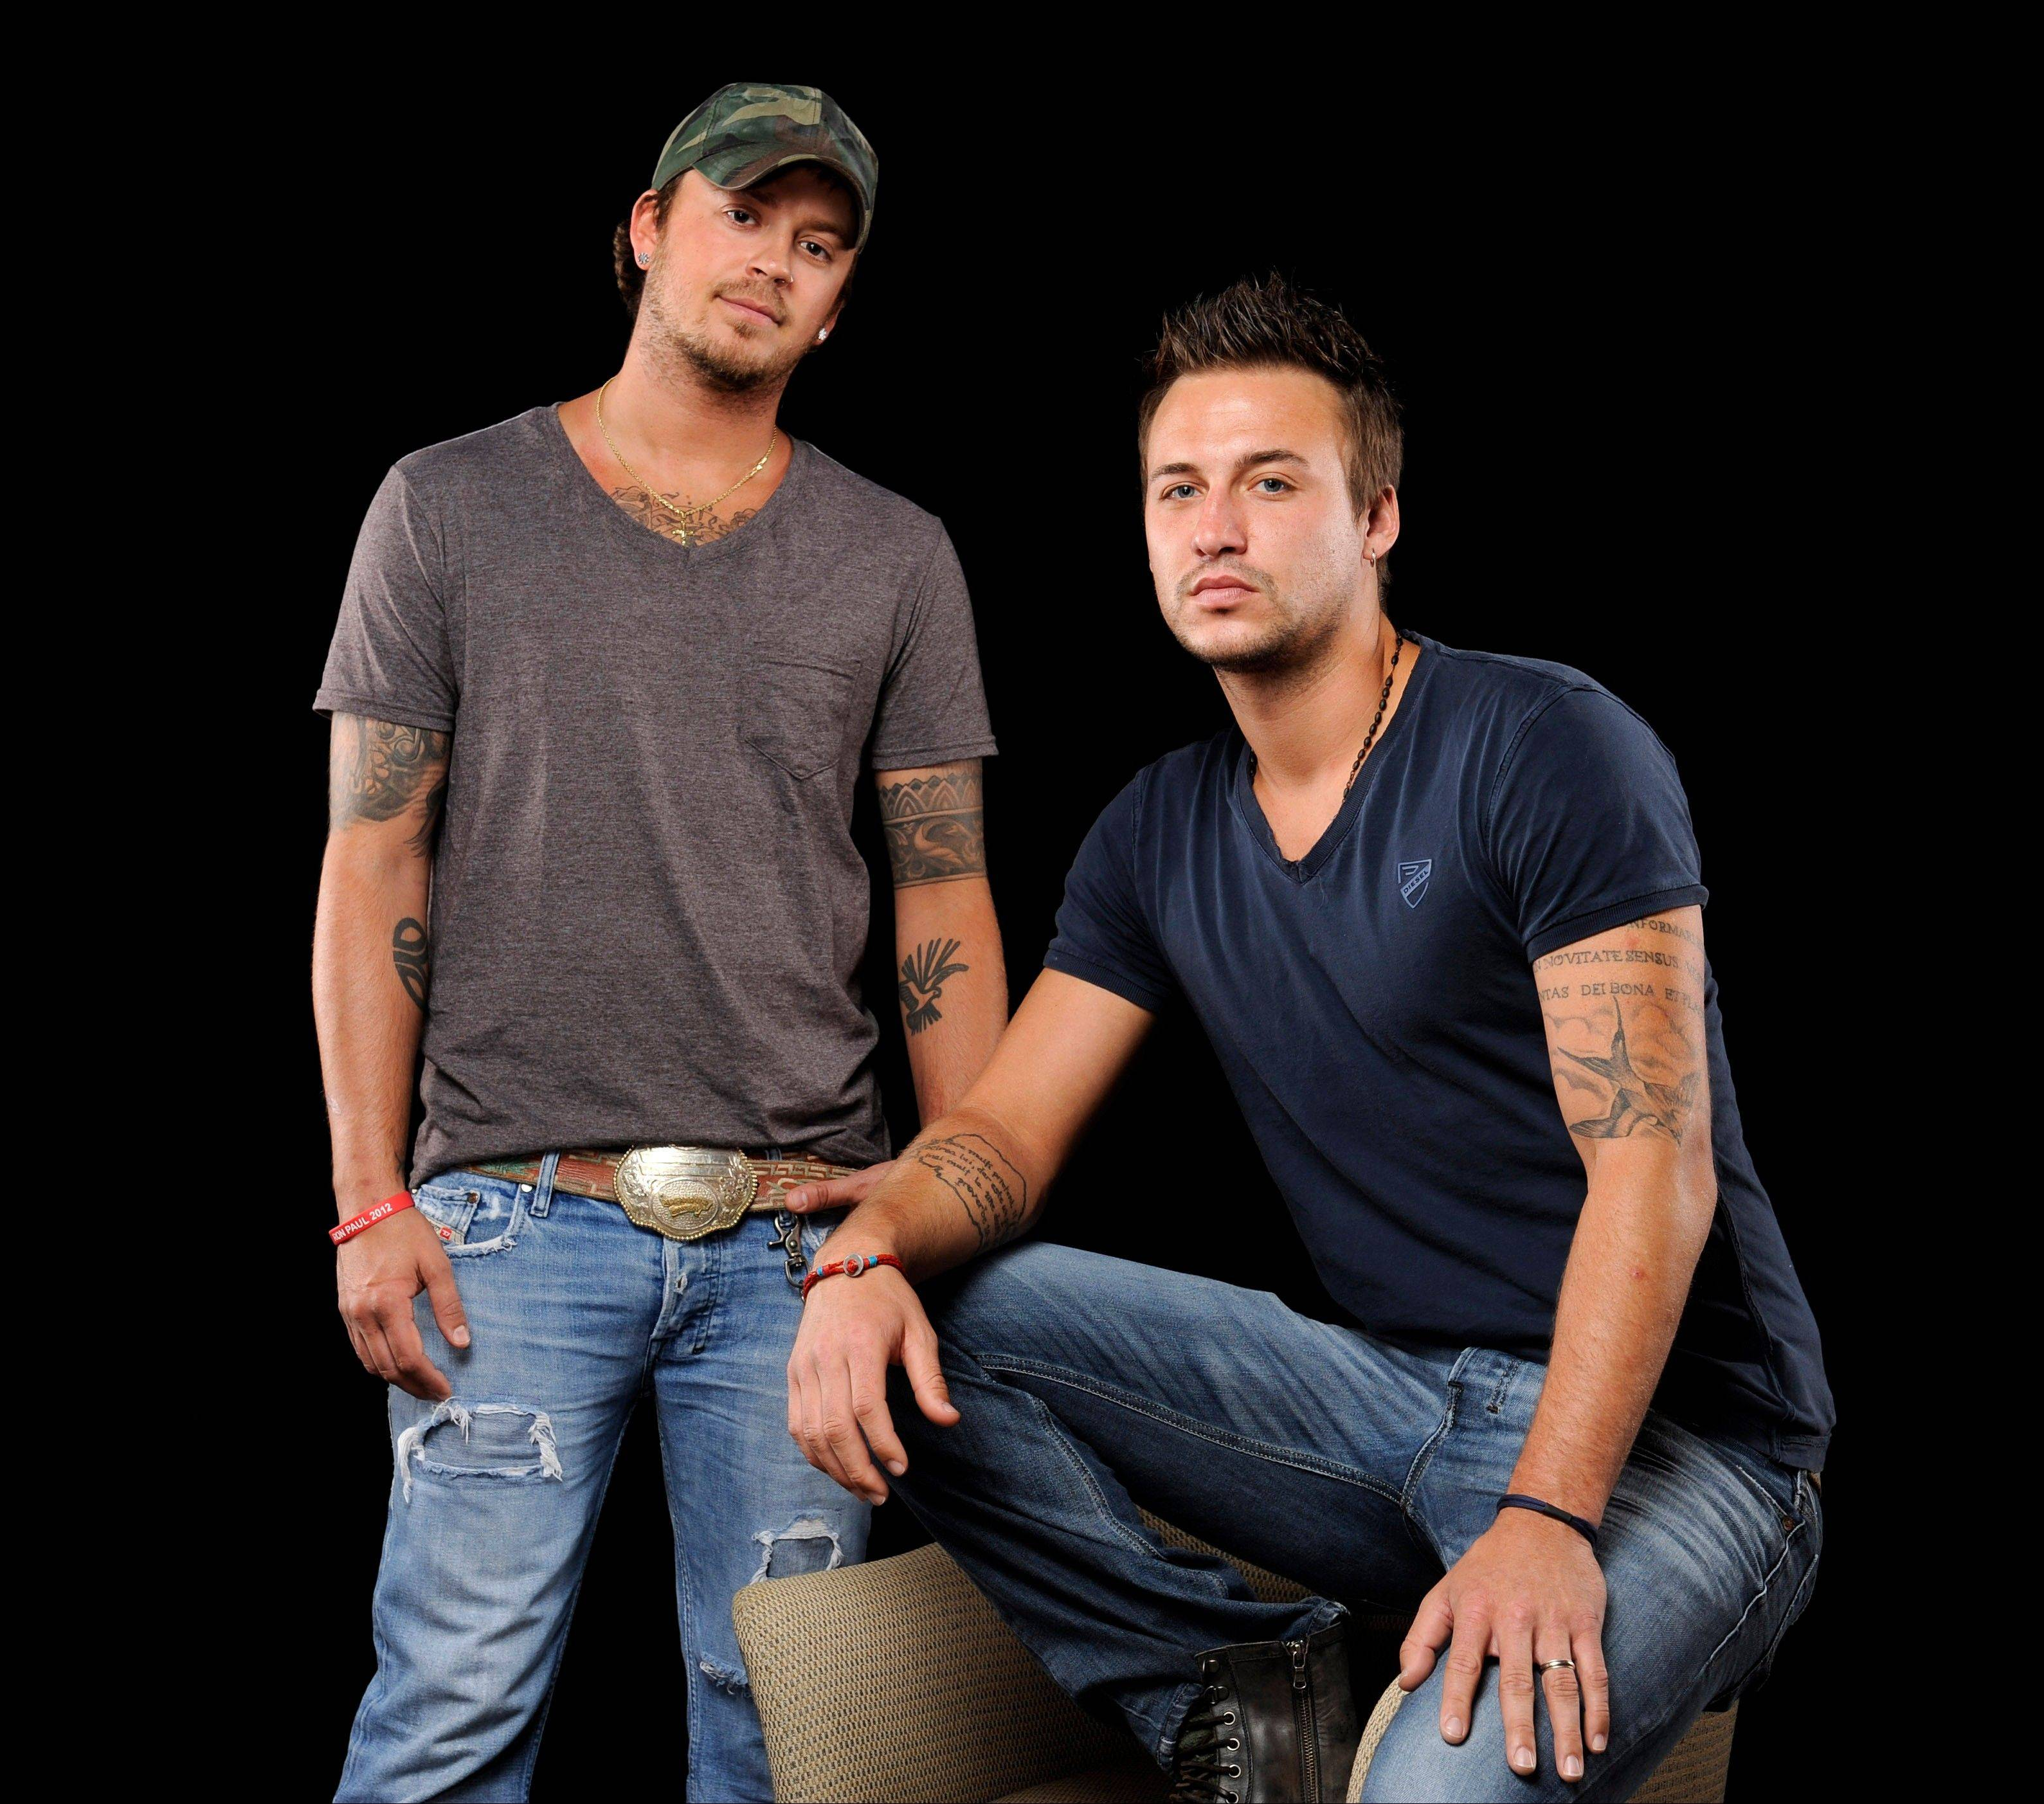 The self-titled second album for country music duo Love and Theft -- Stephen Barker Liles, left, and Eric Gunderson -- came out last month.